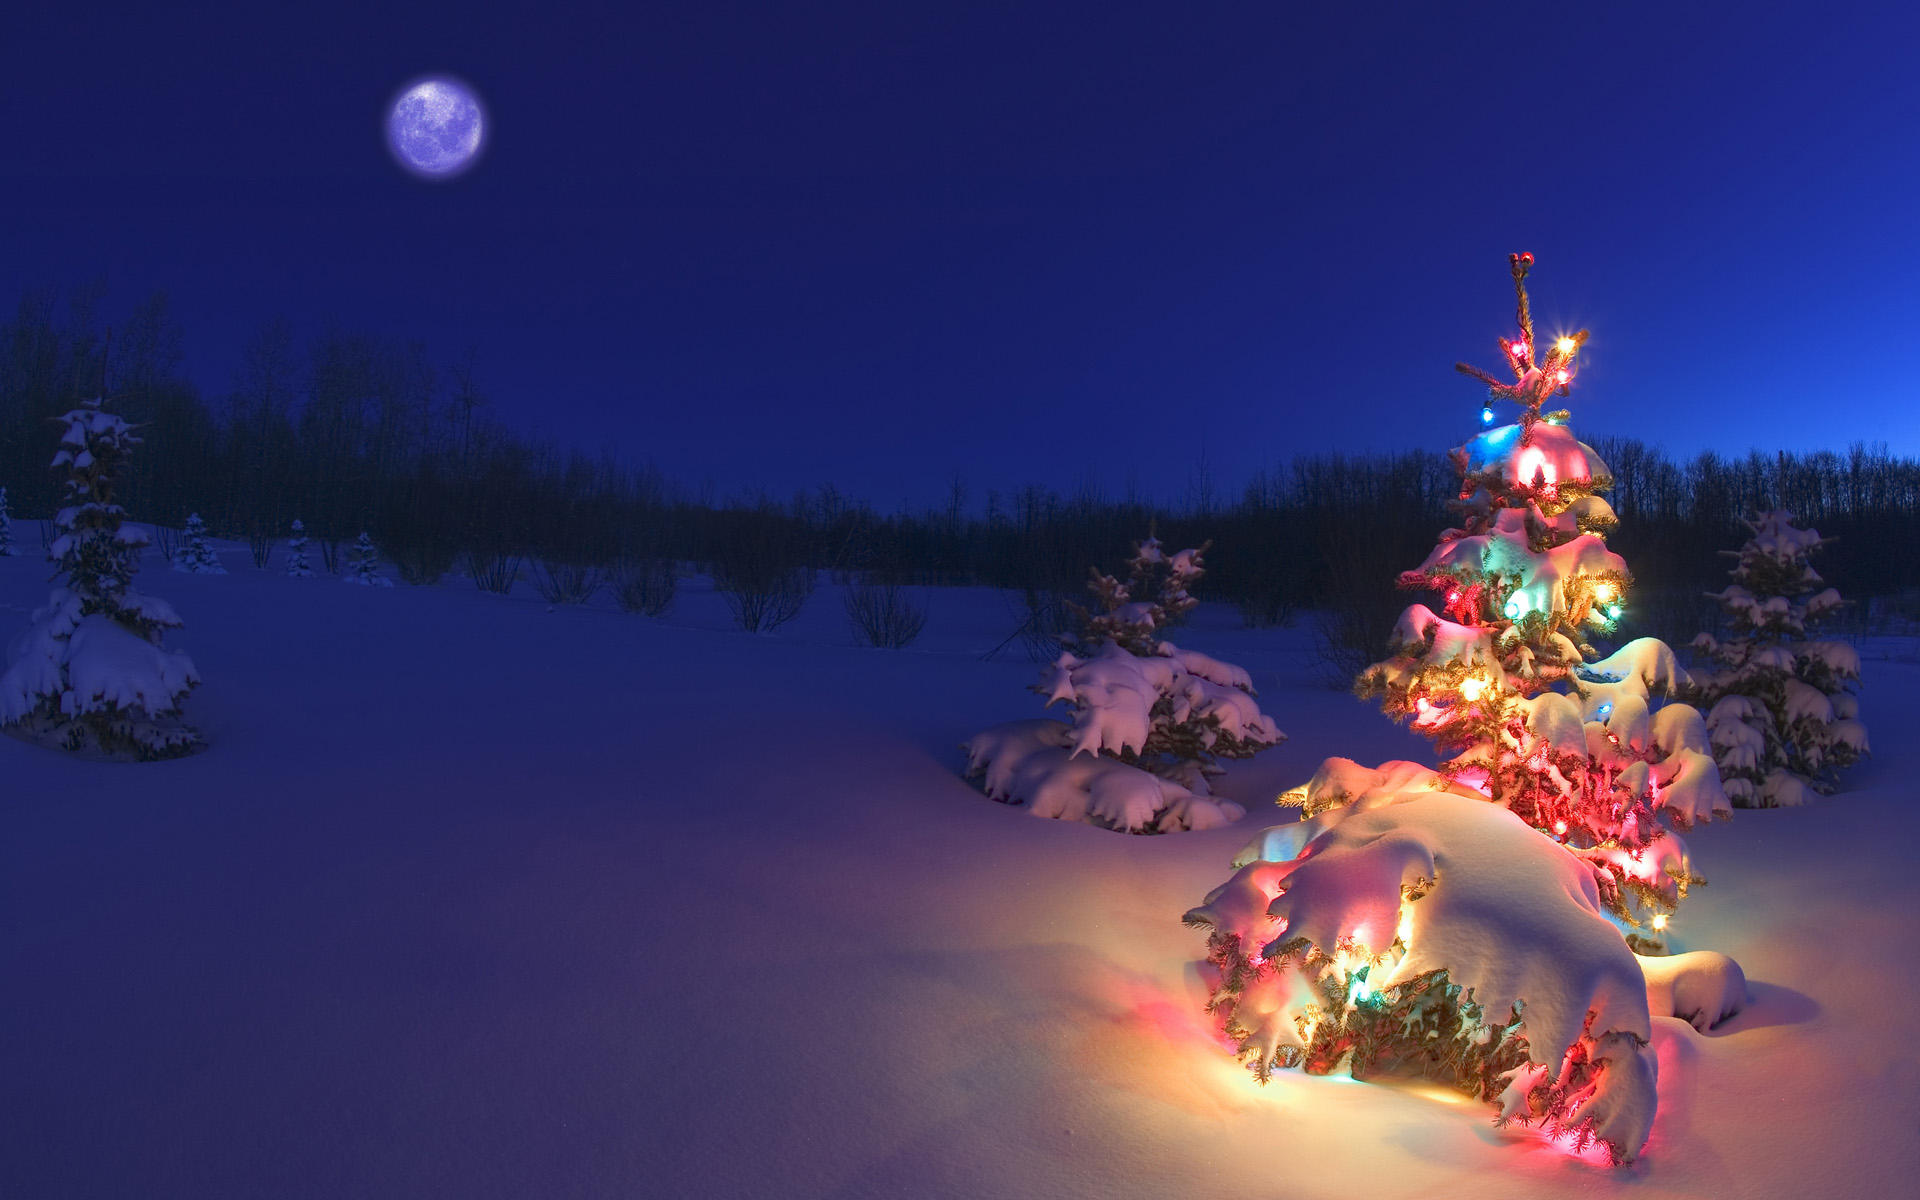 Christmas eve images free download